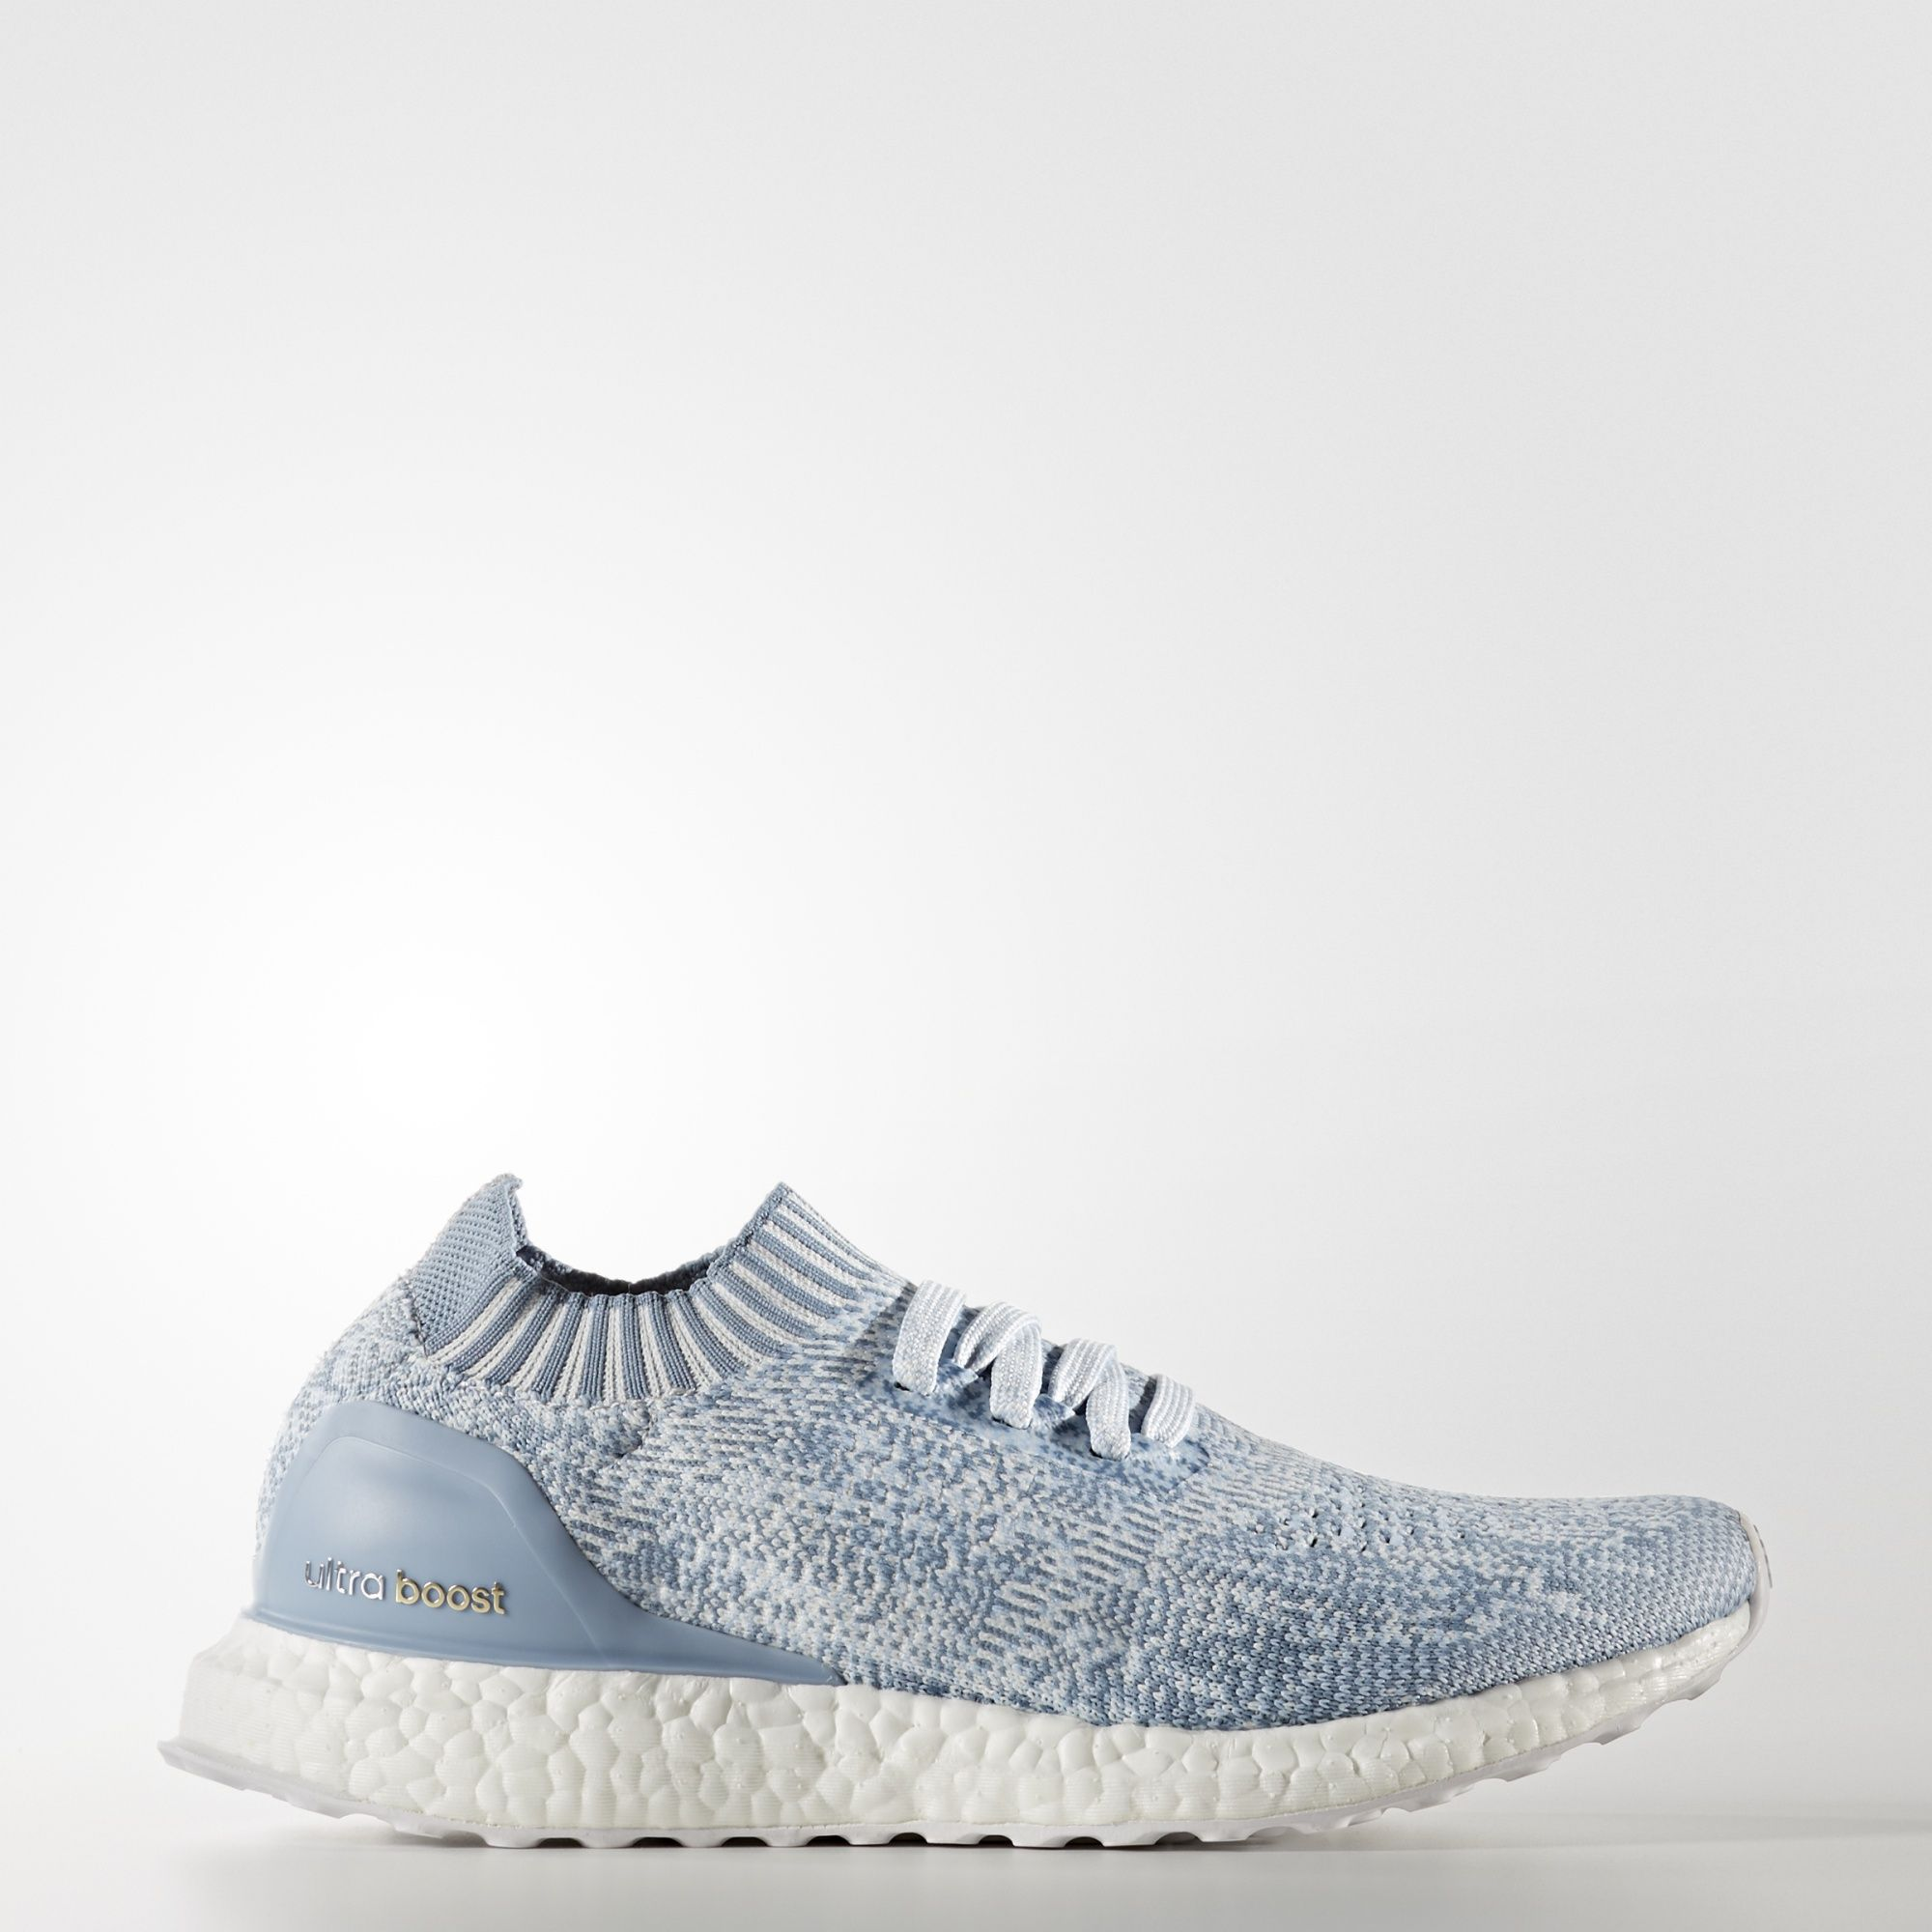 brand new 460c0 07ce3 Adidas Ultra boost uncaged shoes  240